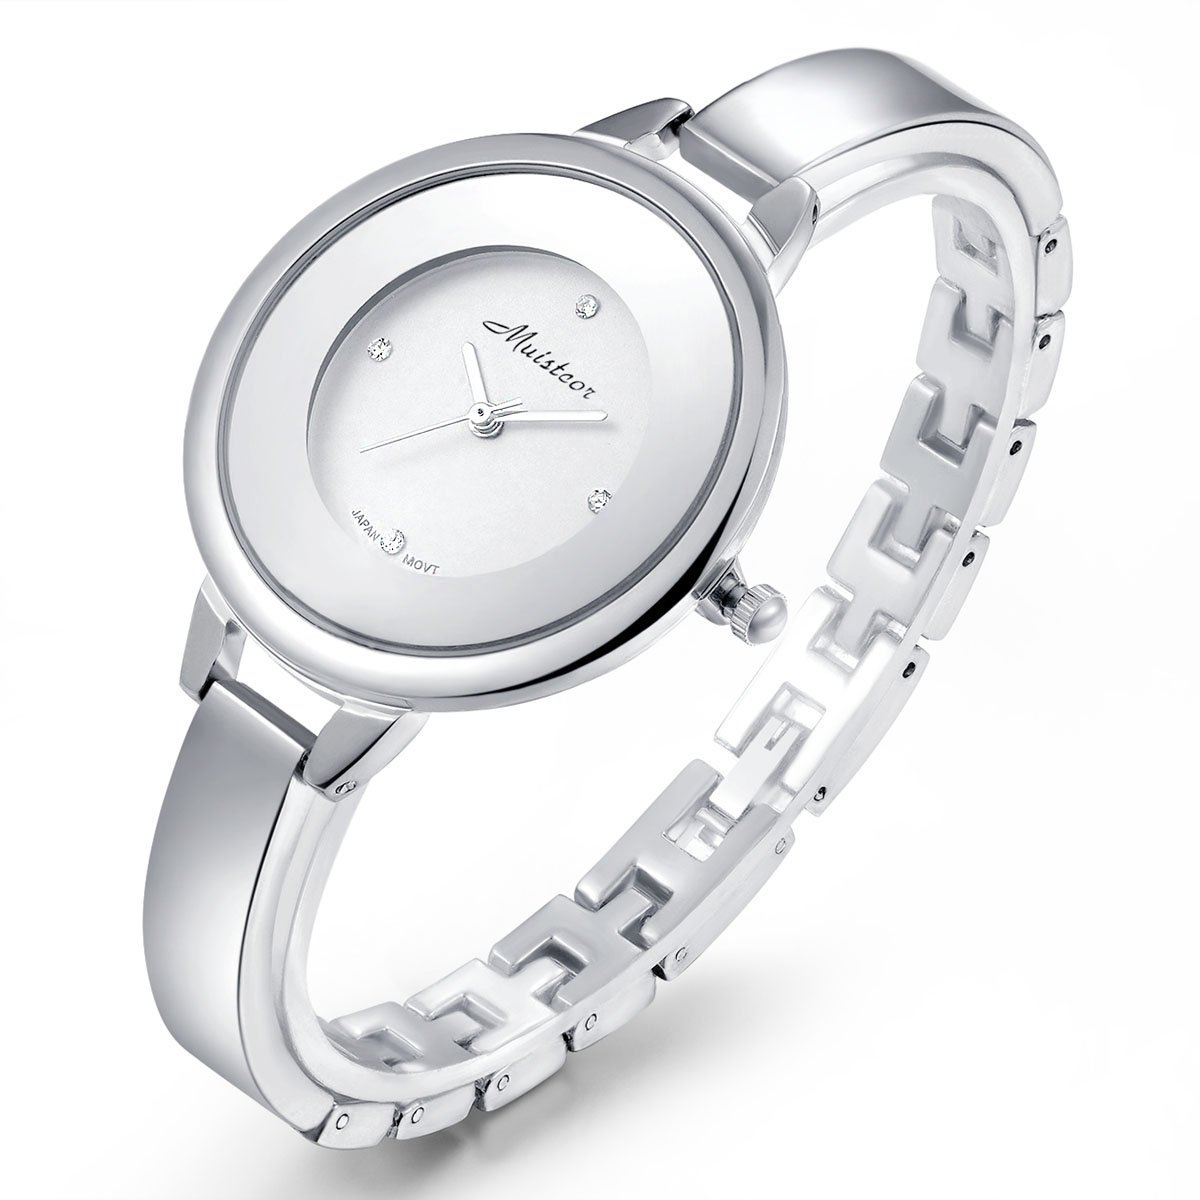 Stainless Steel Wrist Watch for Women Luxury Silver-Tone Watch Analog Quartz Ladies Watches, Silver, One Size